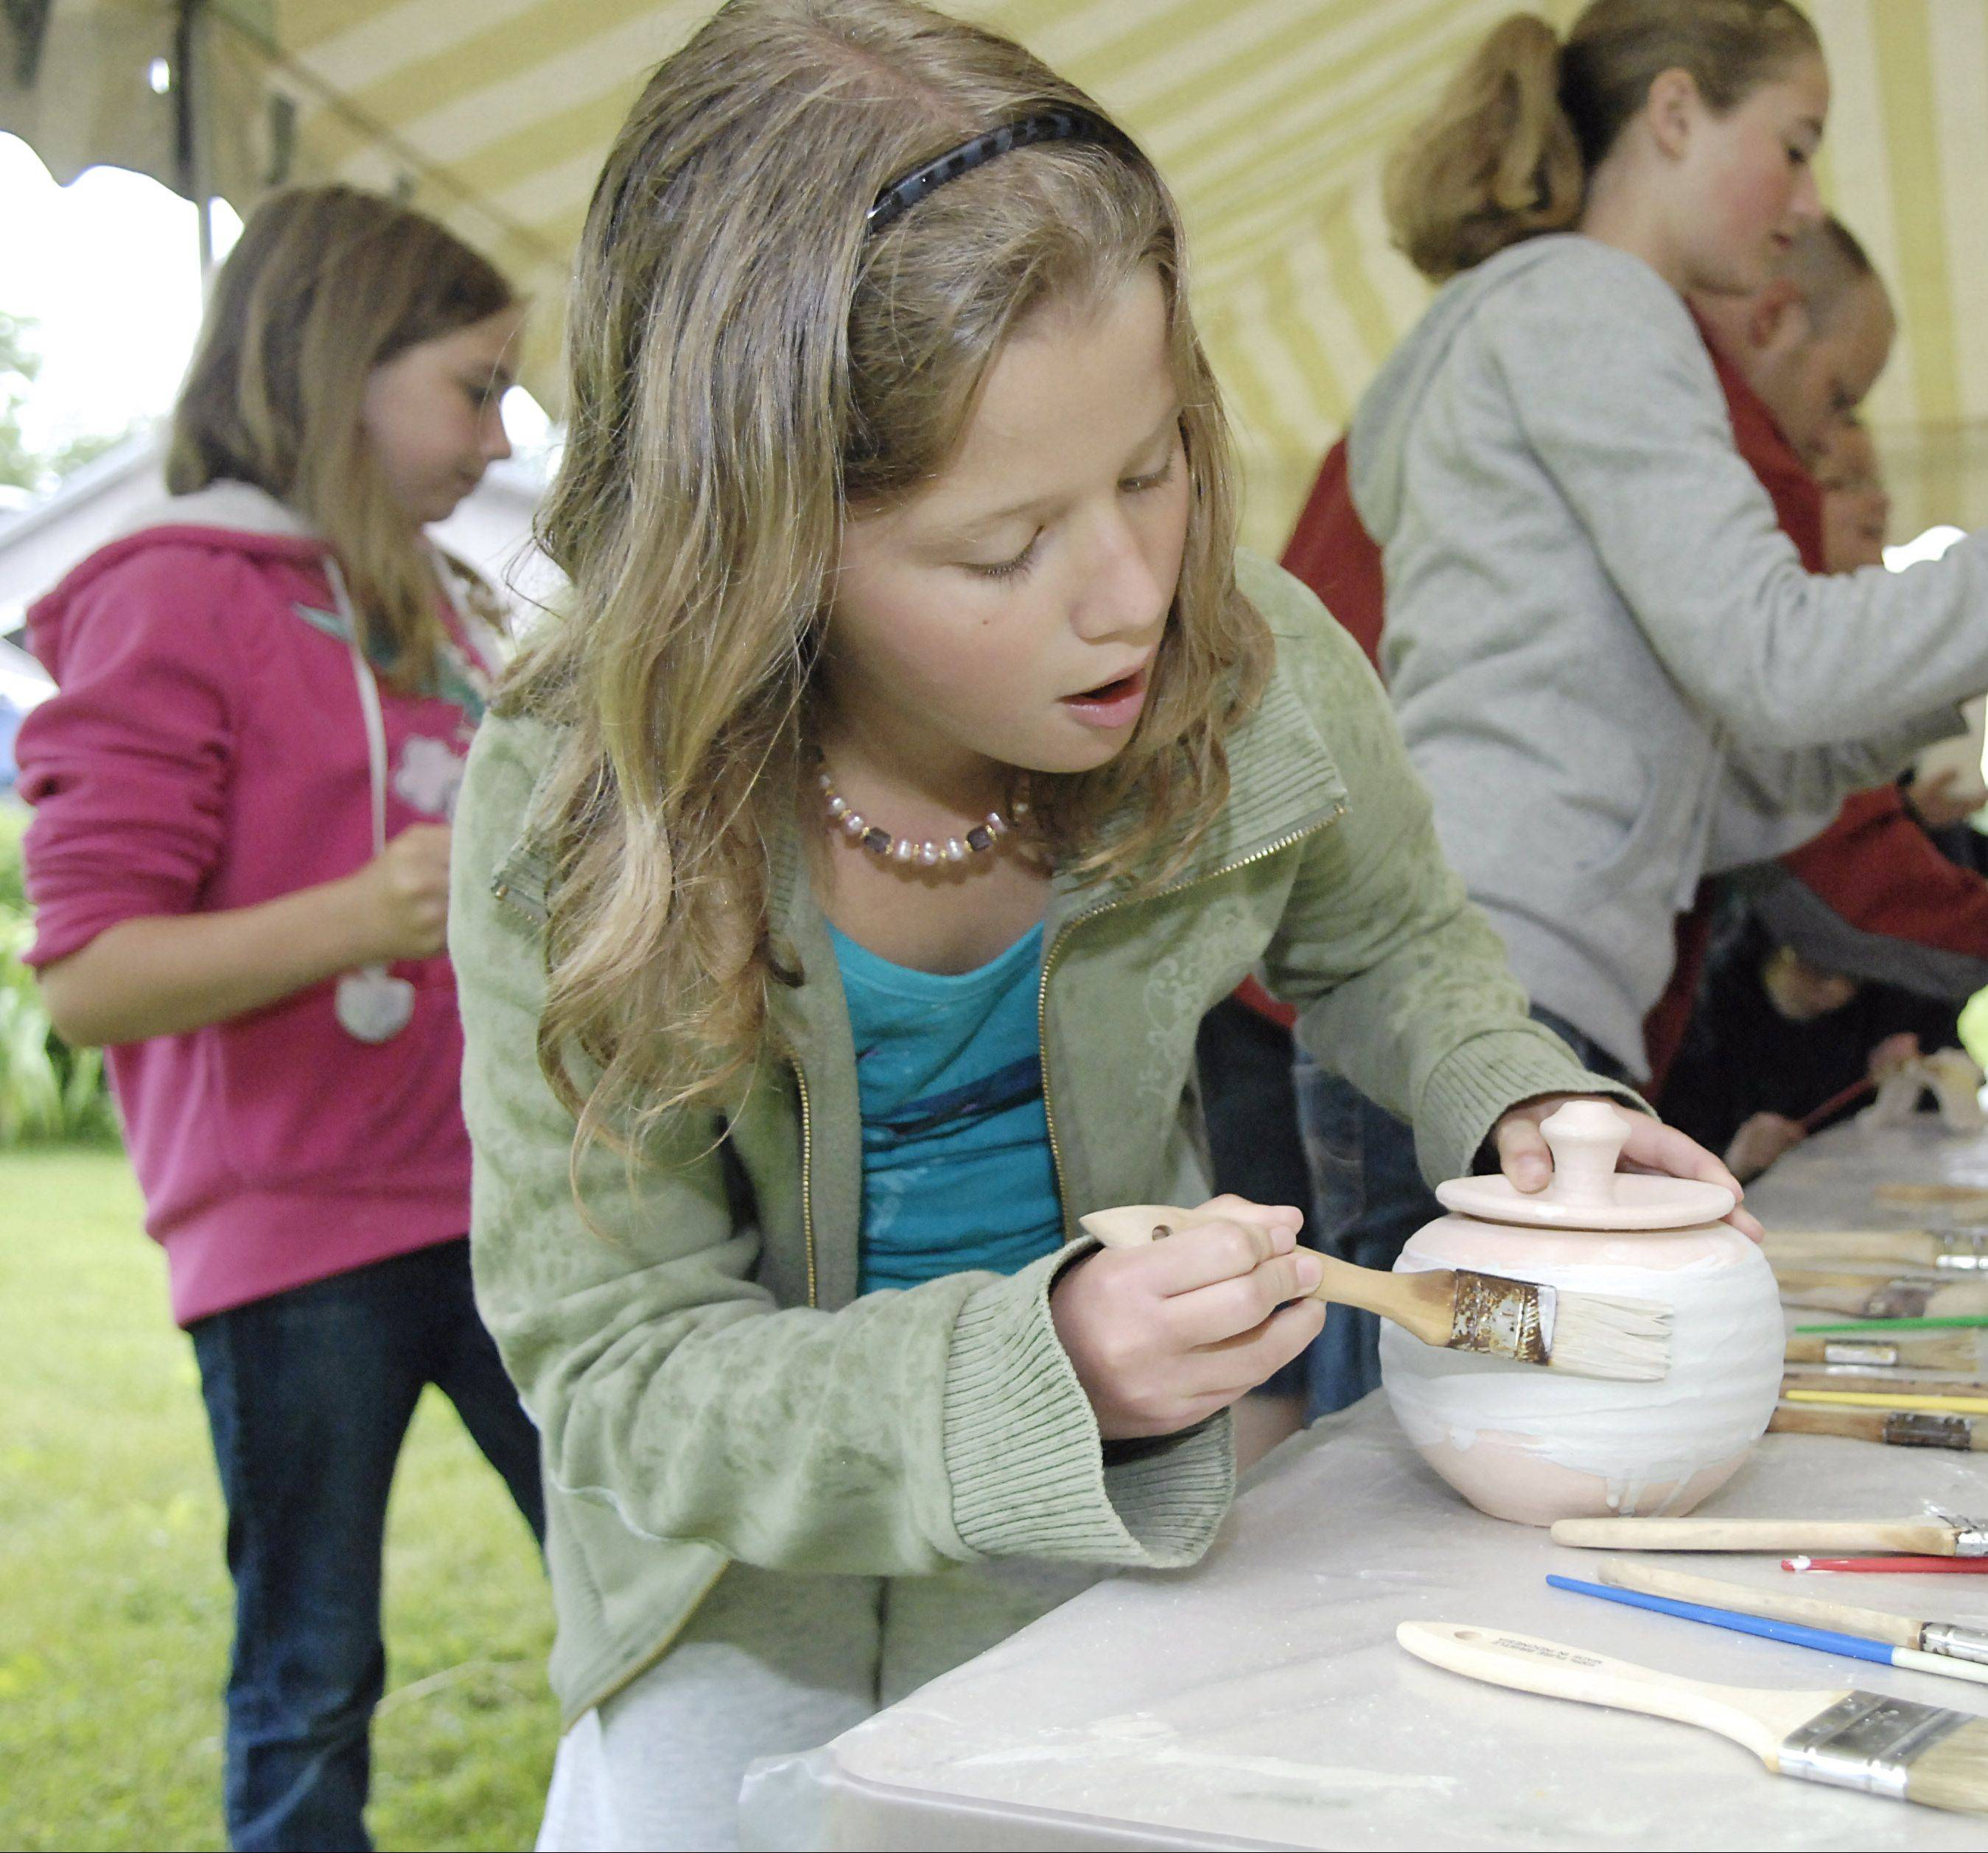 Visitors to Blackberry Farm Park in Aurora on Sunday, Sept. 18, can decorate pottery Raku-style, have it fired on-site and take it home the same day. The event is set for 11 a.m. to 2 p.m.